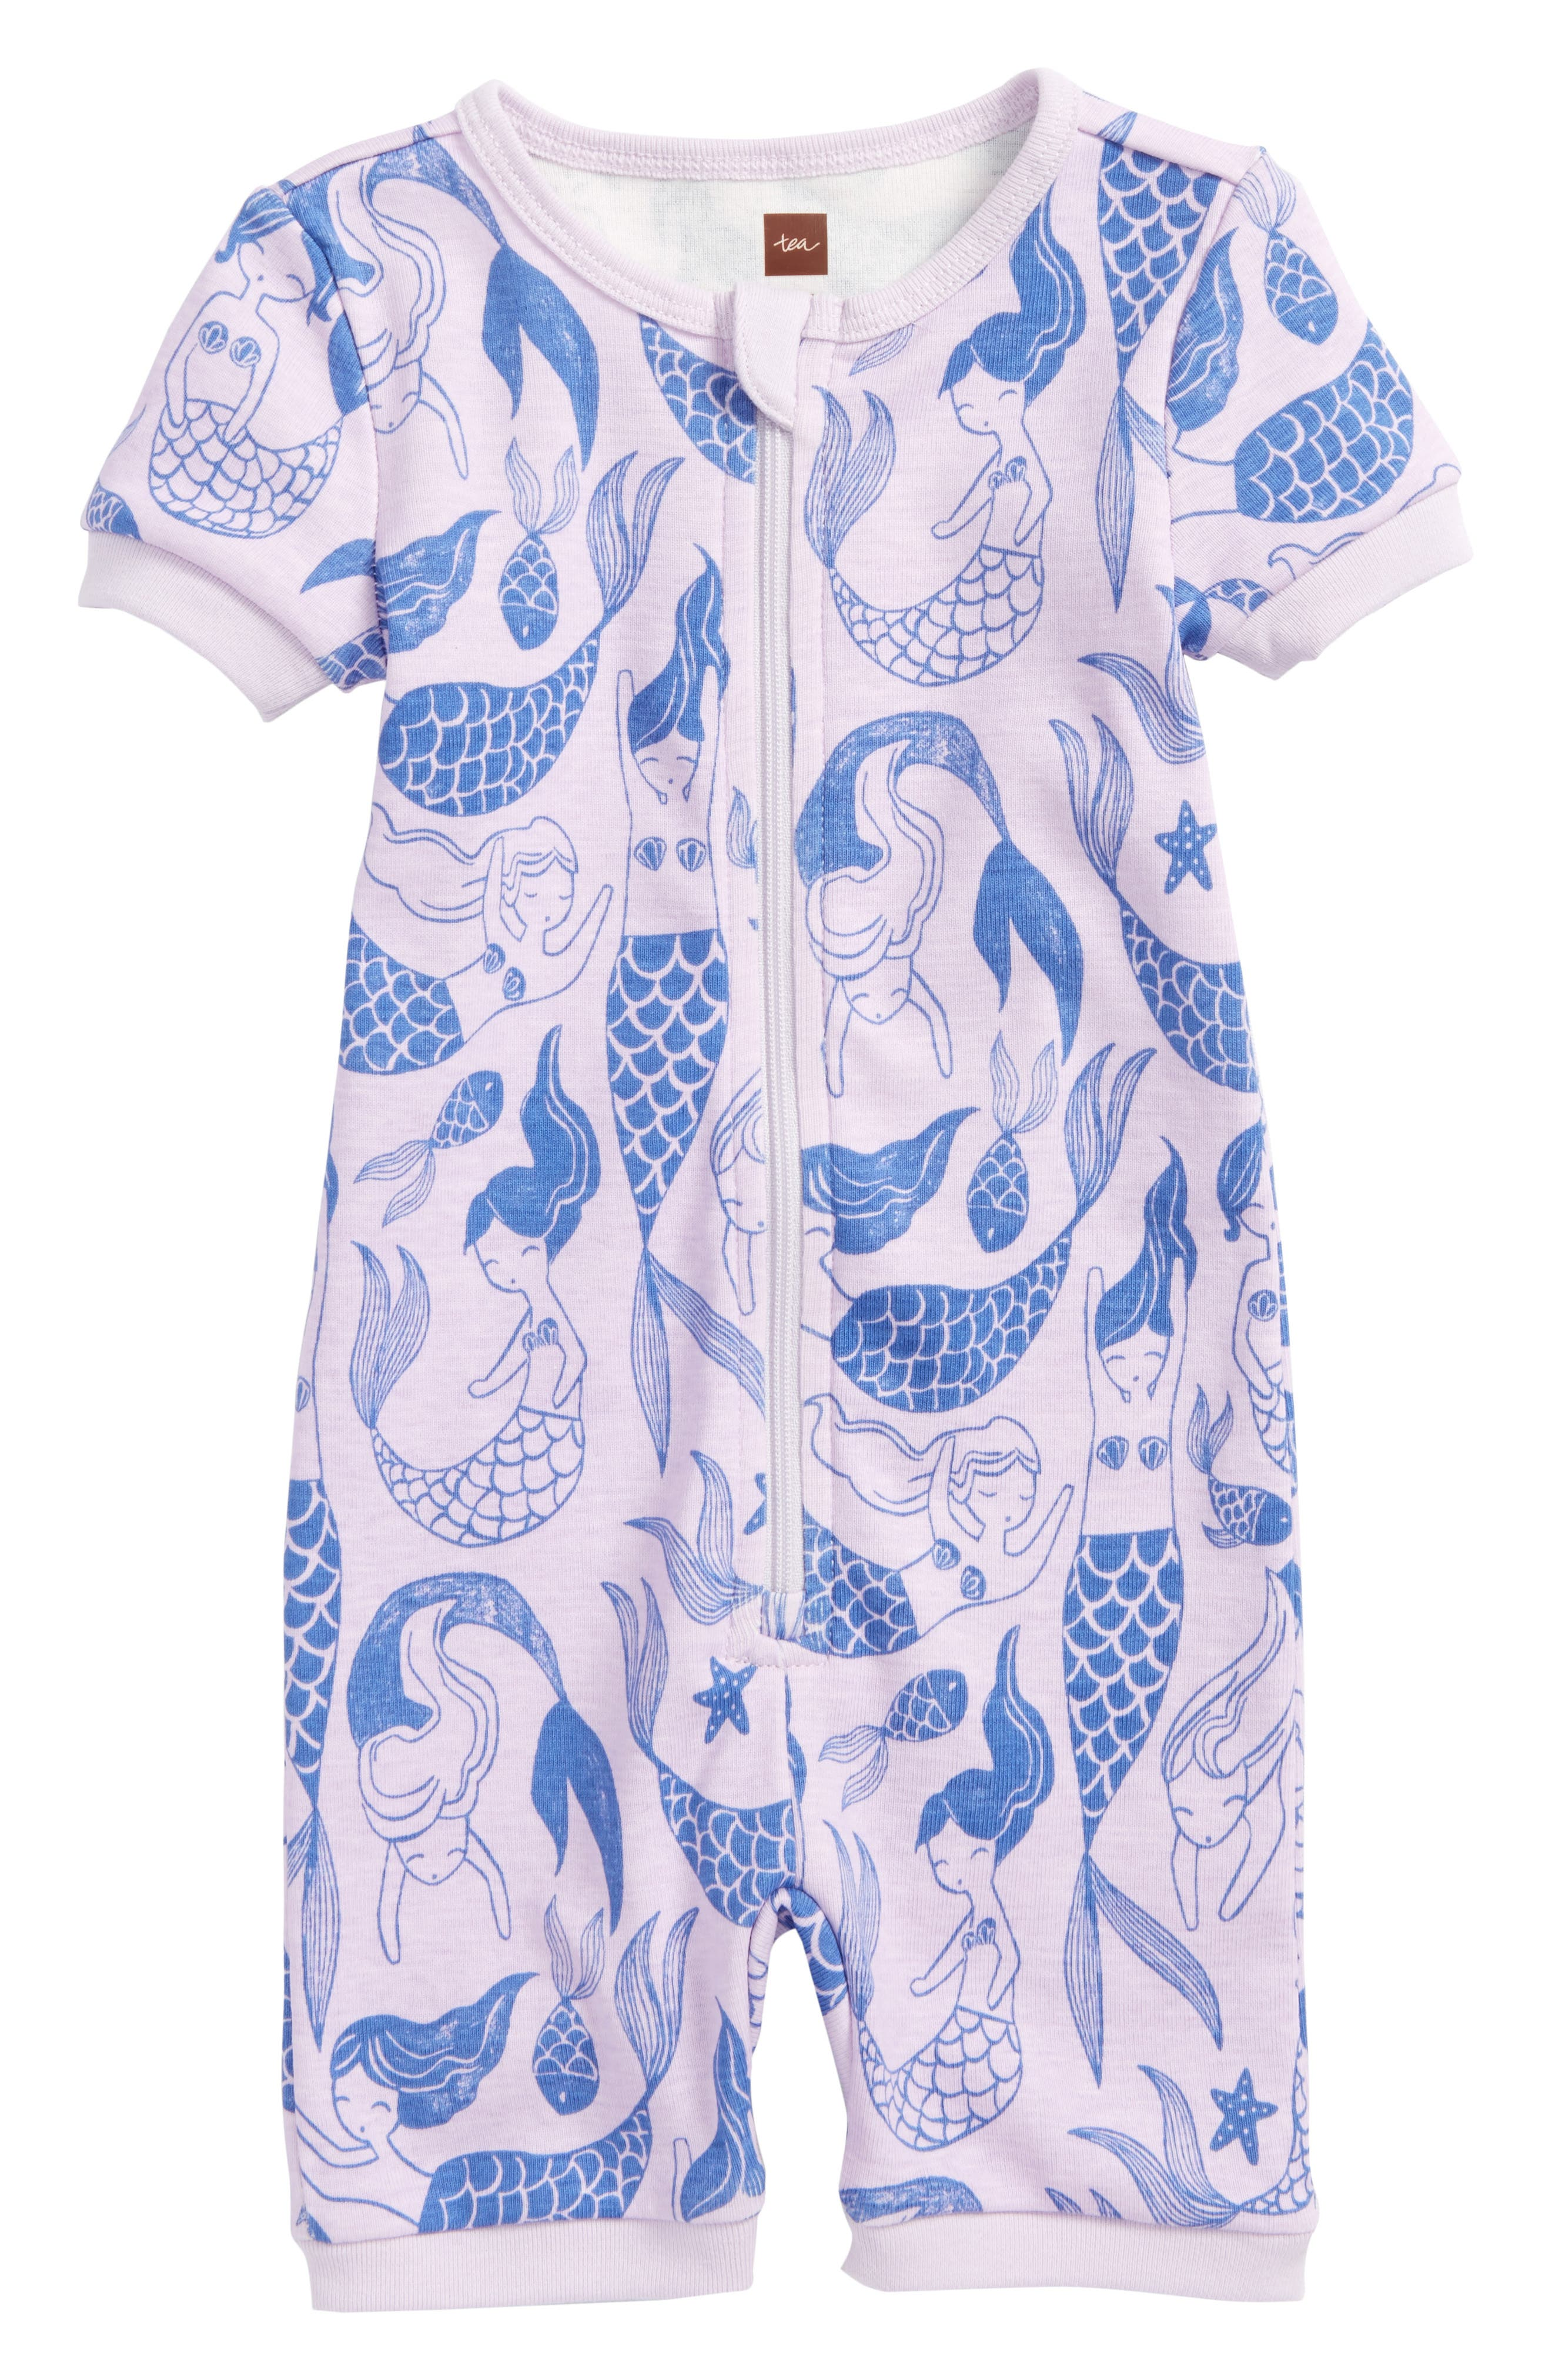 Short Sleeve Fitted One-Piece Pajamas,                         Main,                         color, Mermaids